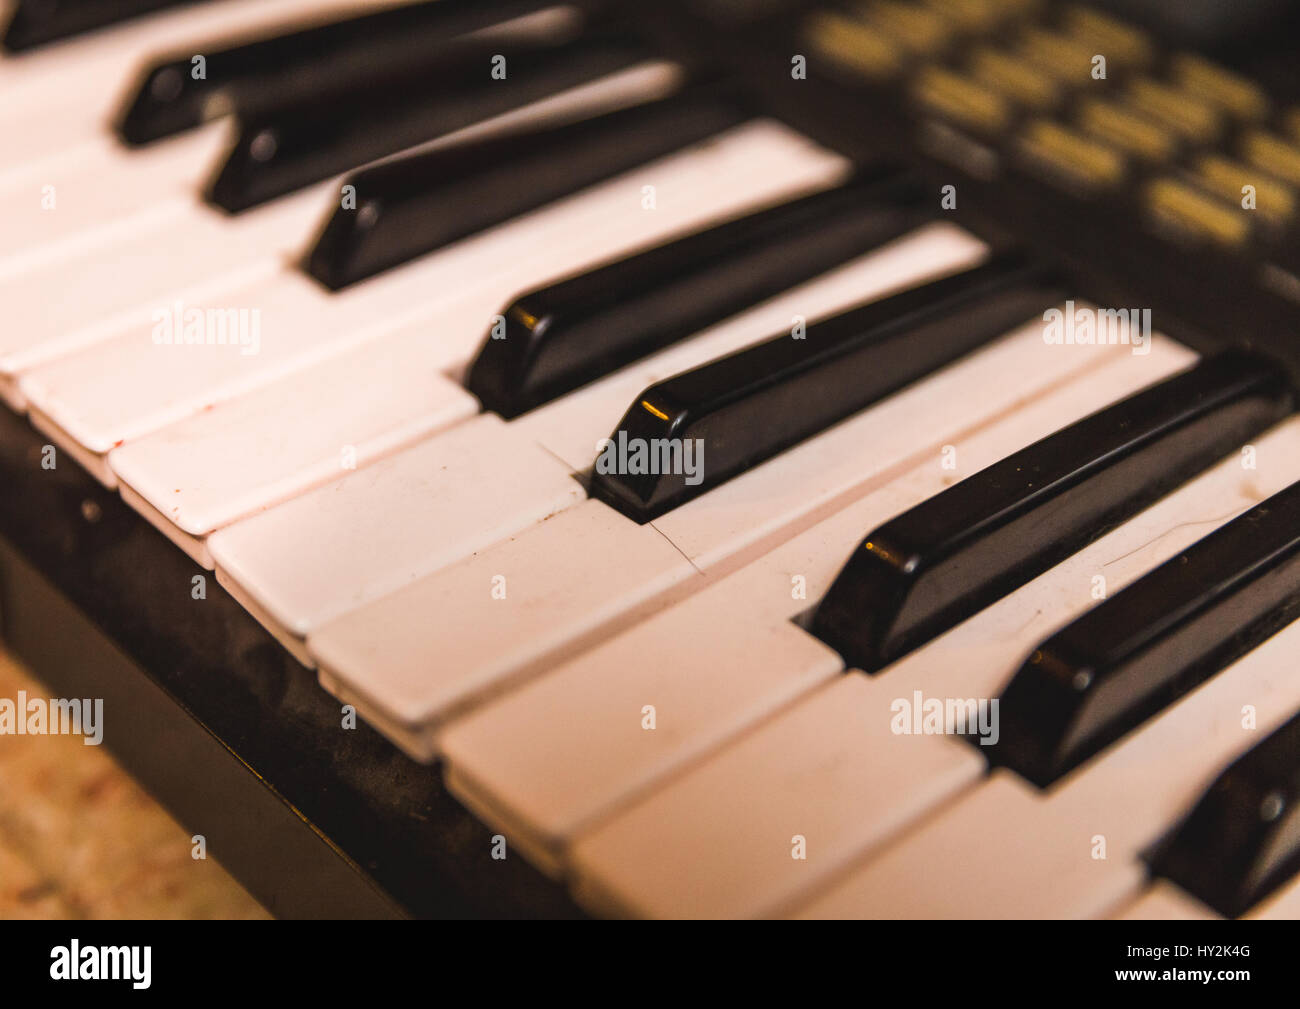 Cracked and bent keys on the keyboard of a vintage synthesizer. - Stock Image